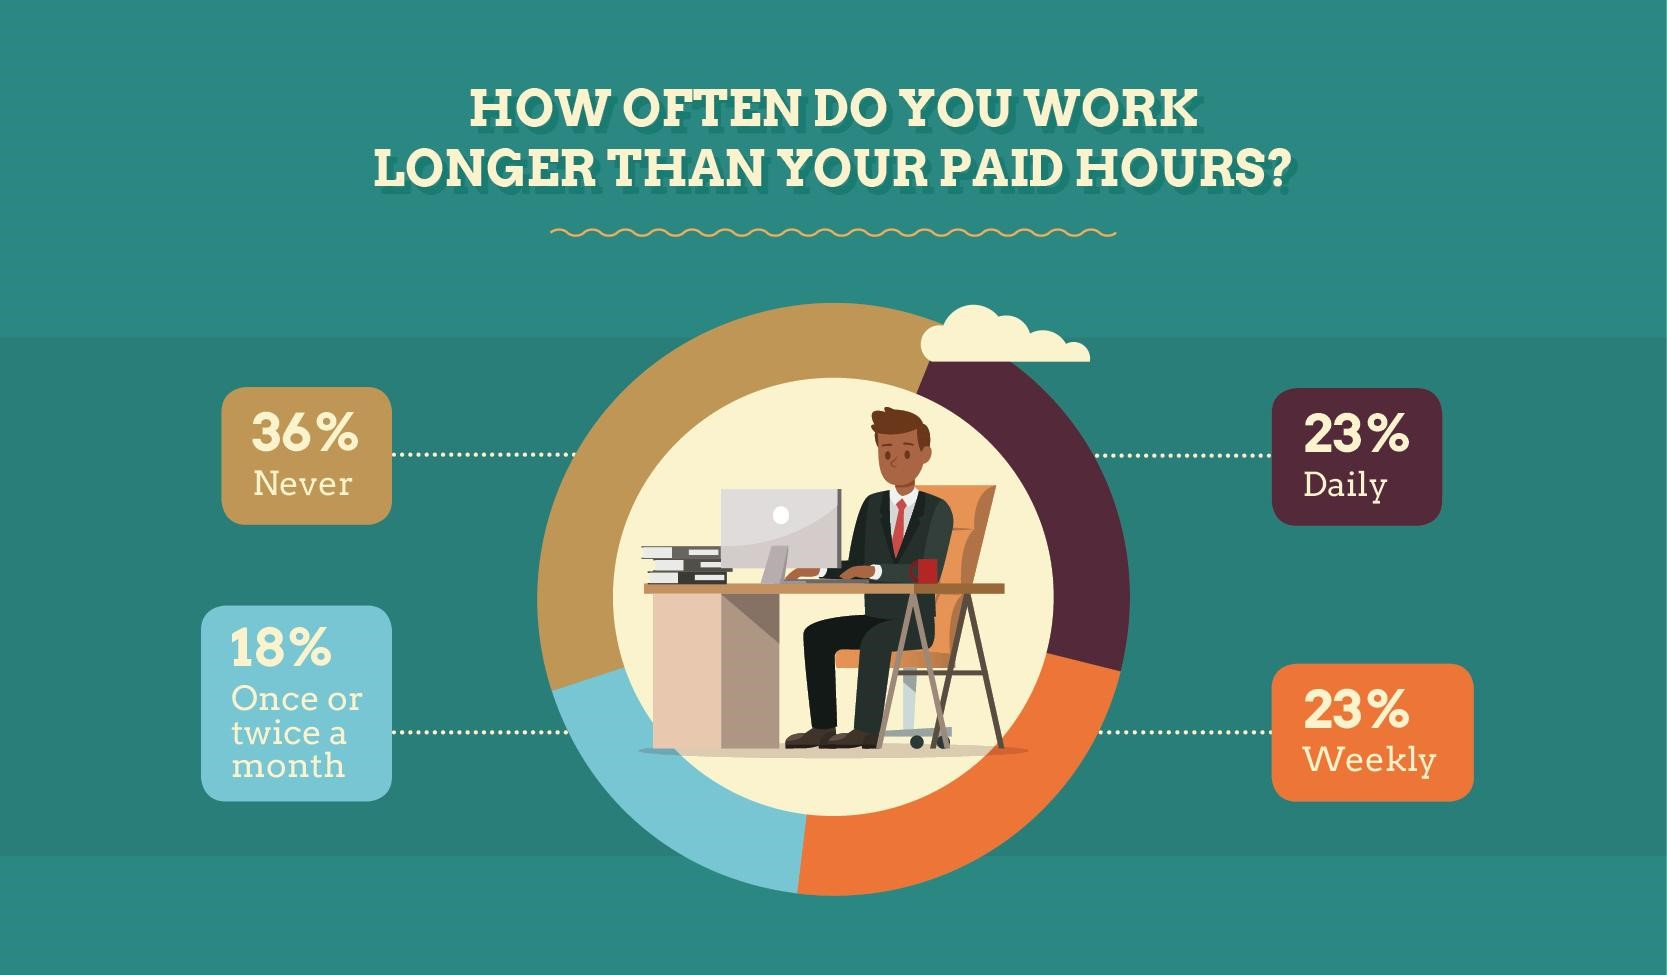 how often do you work longer than your paid hours?